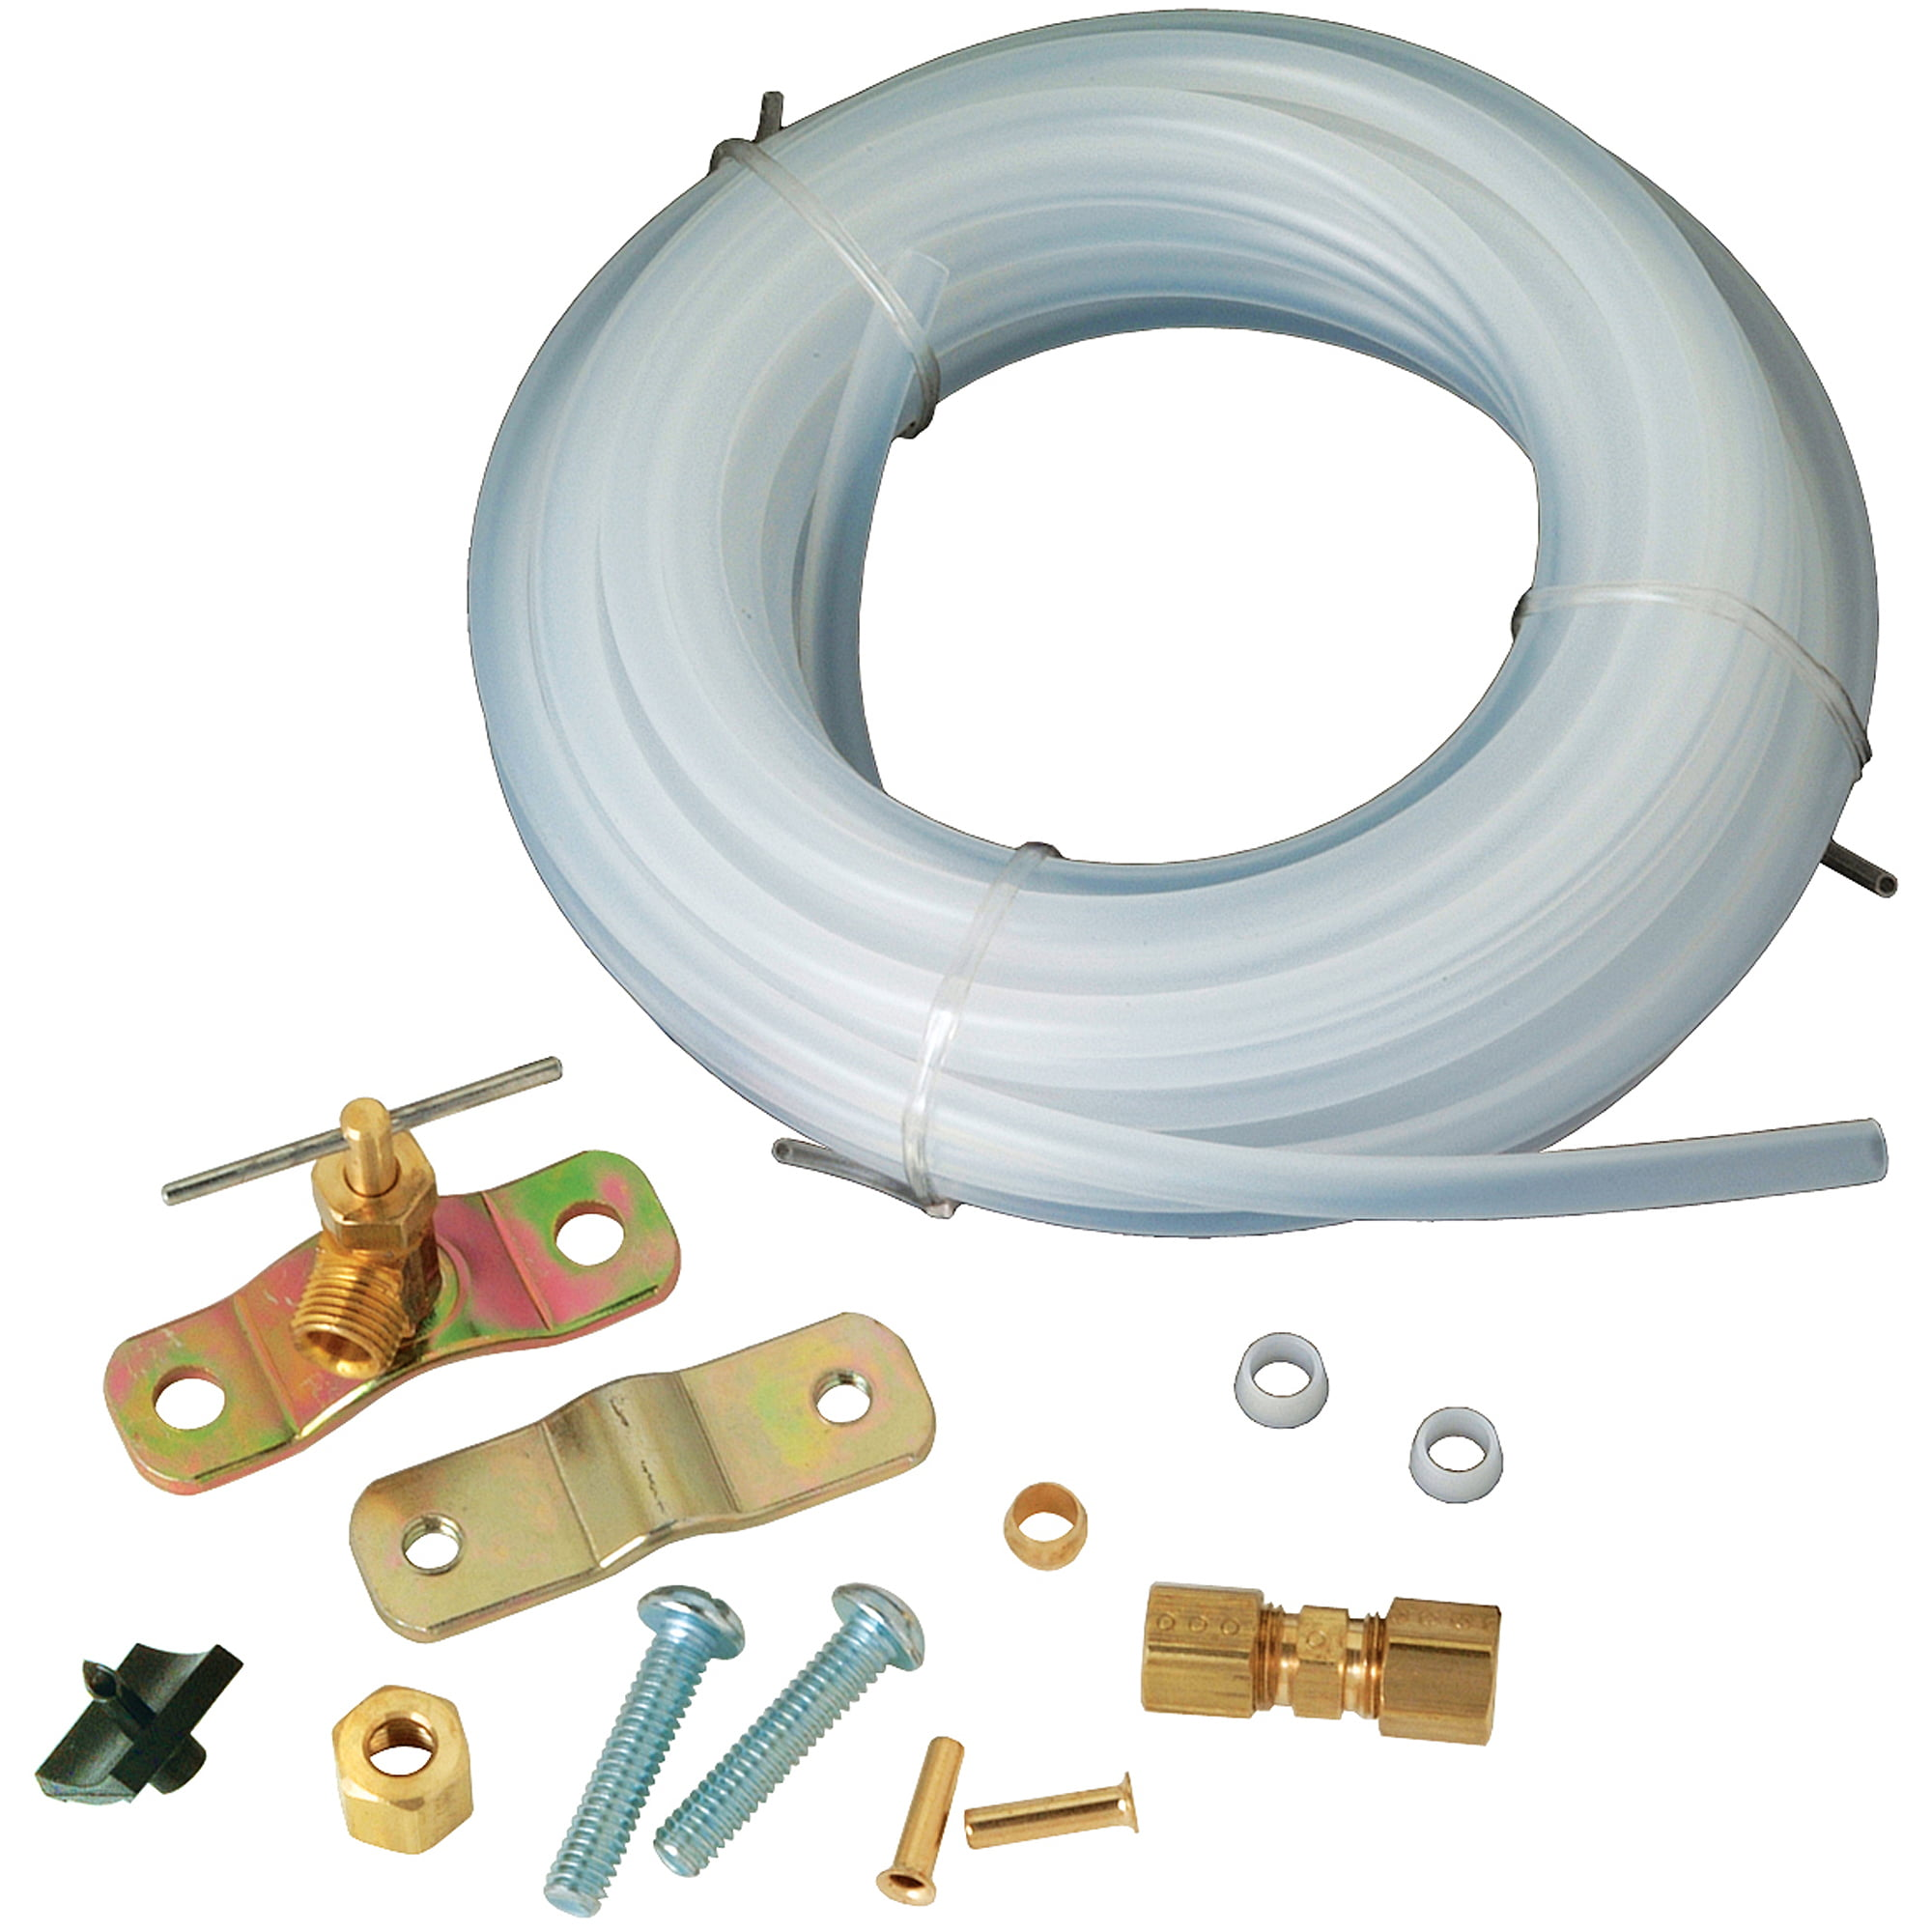 ICE MAKER CONNECTION KIT